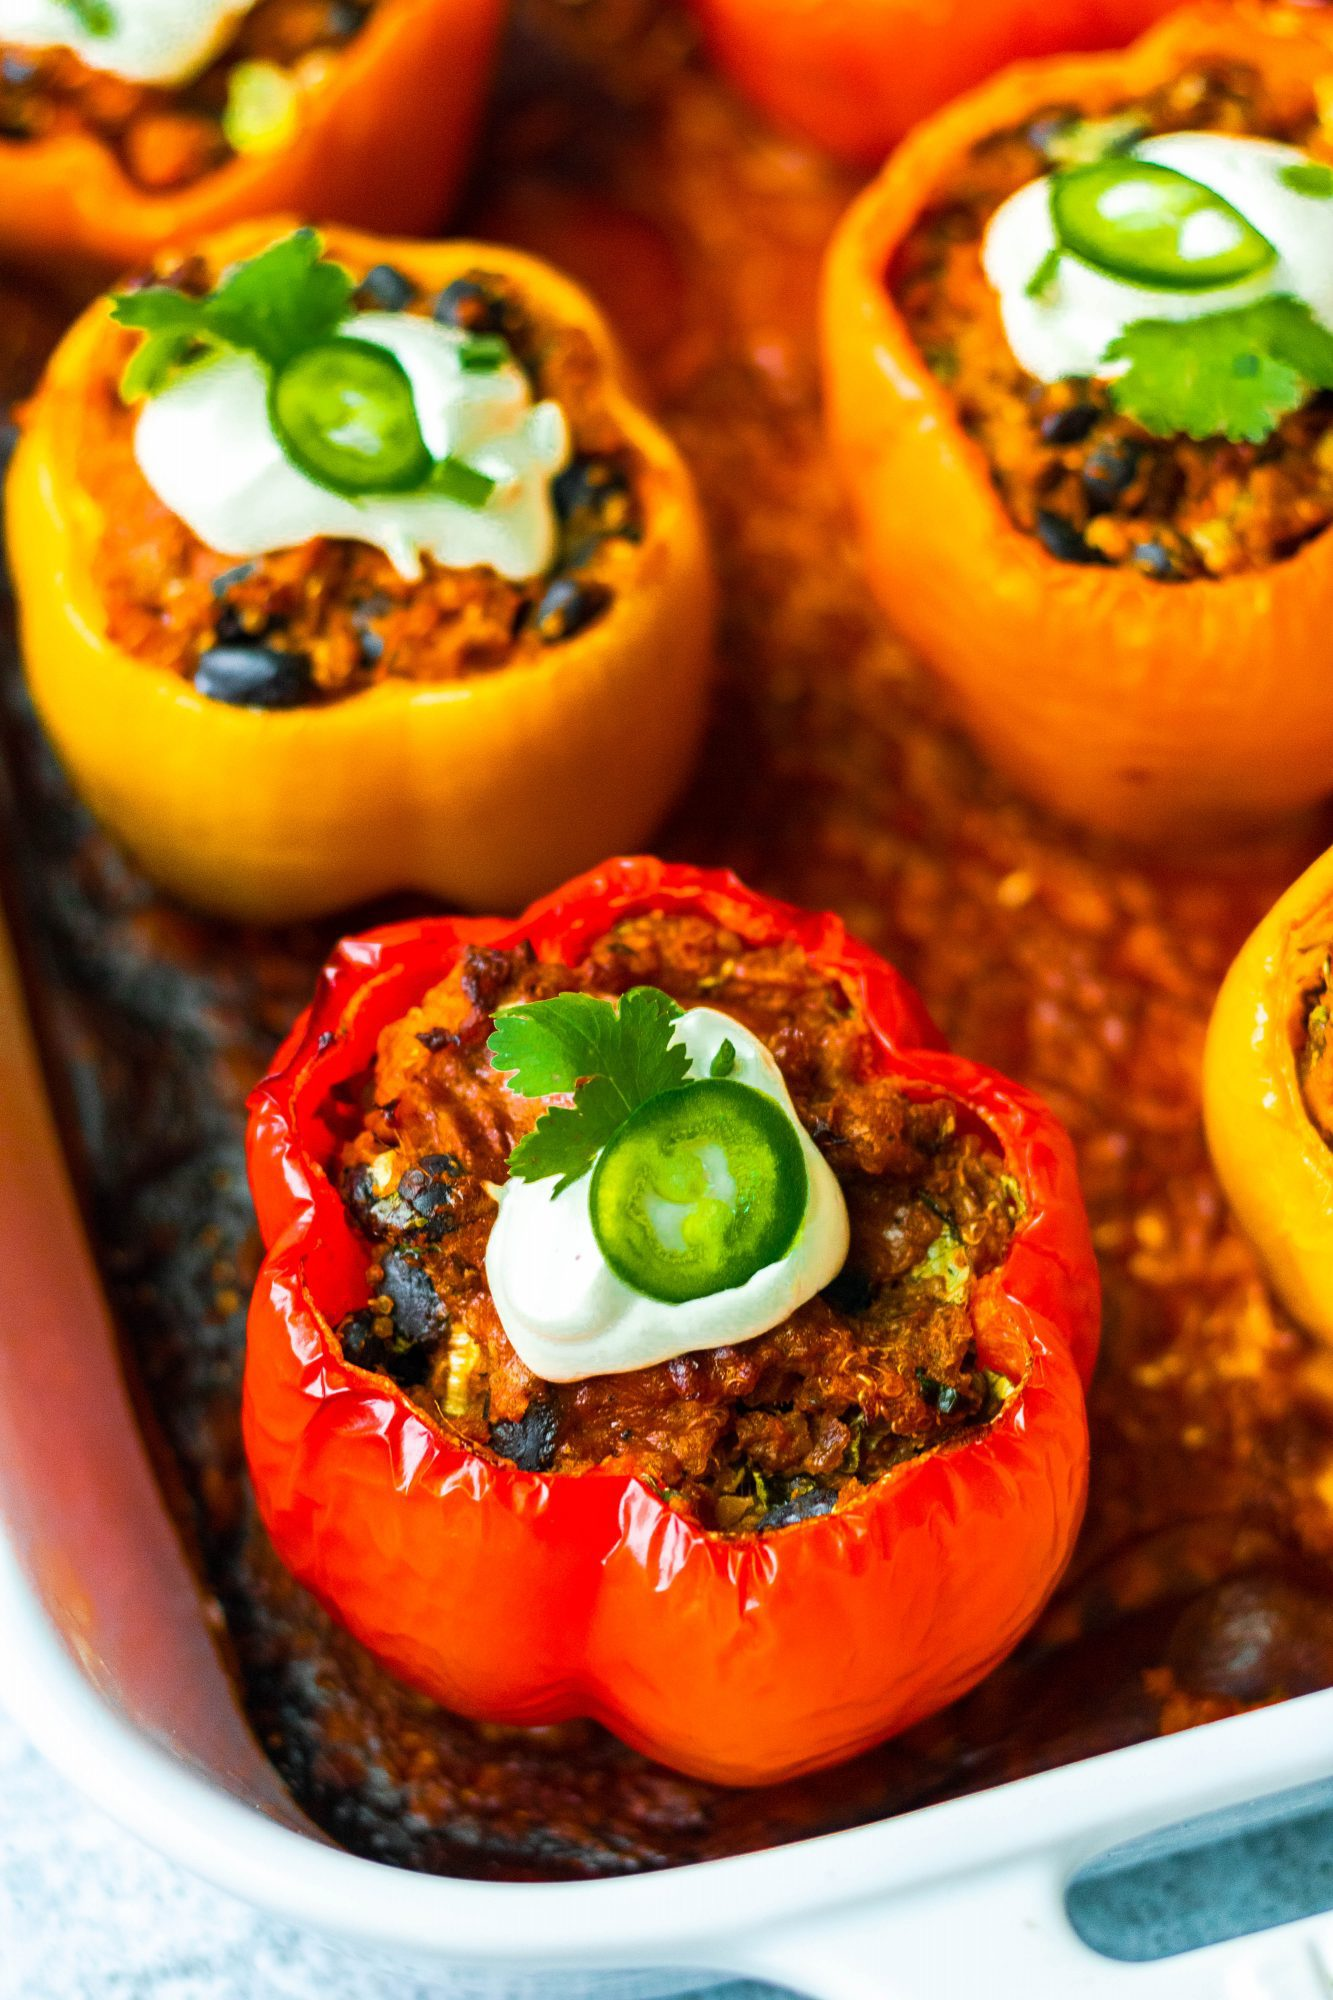 Vegan Enchilada Stuffed Bell Peppers